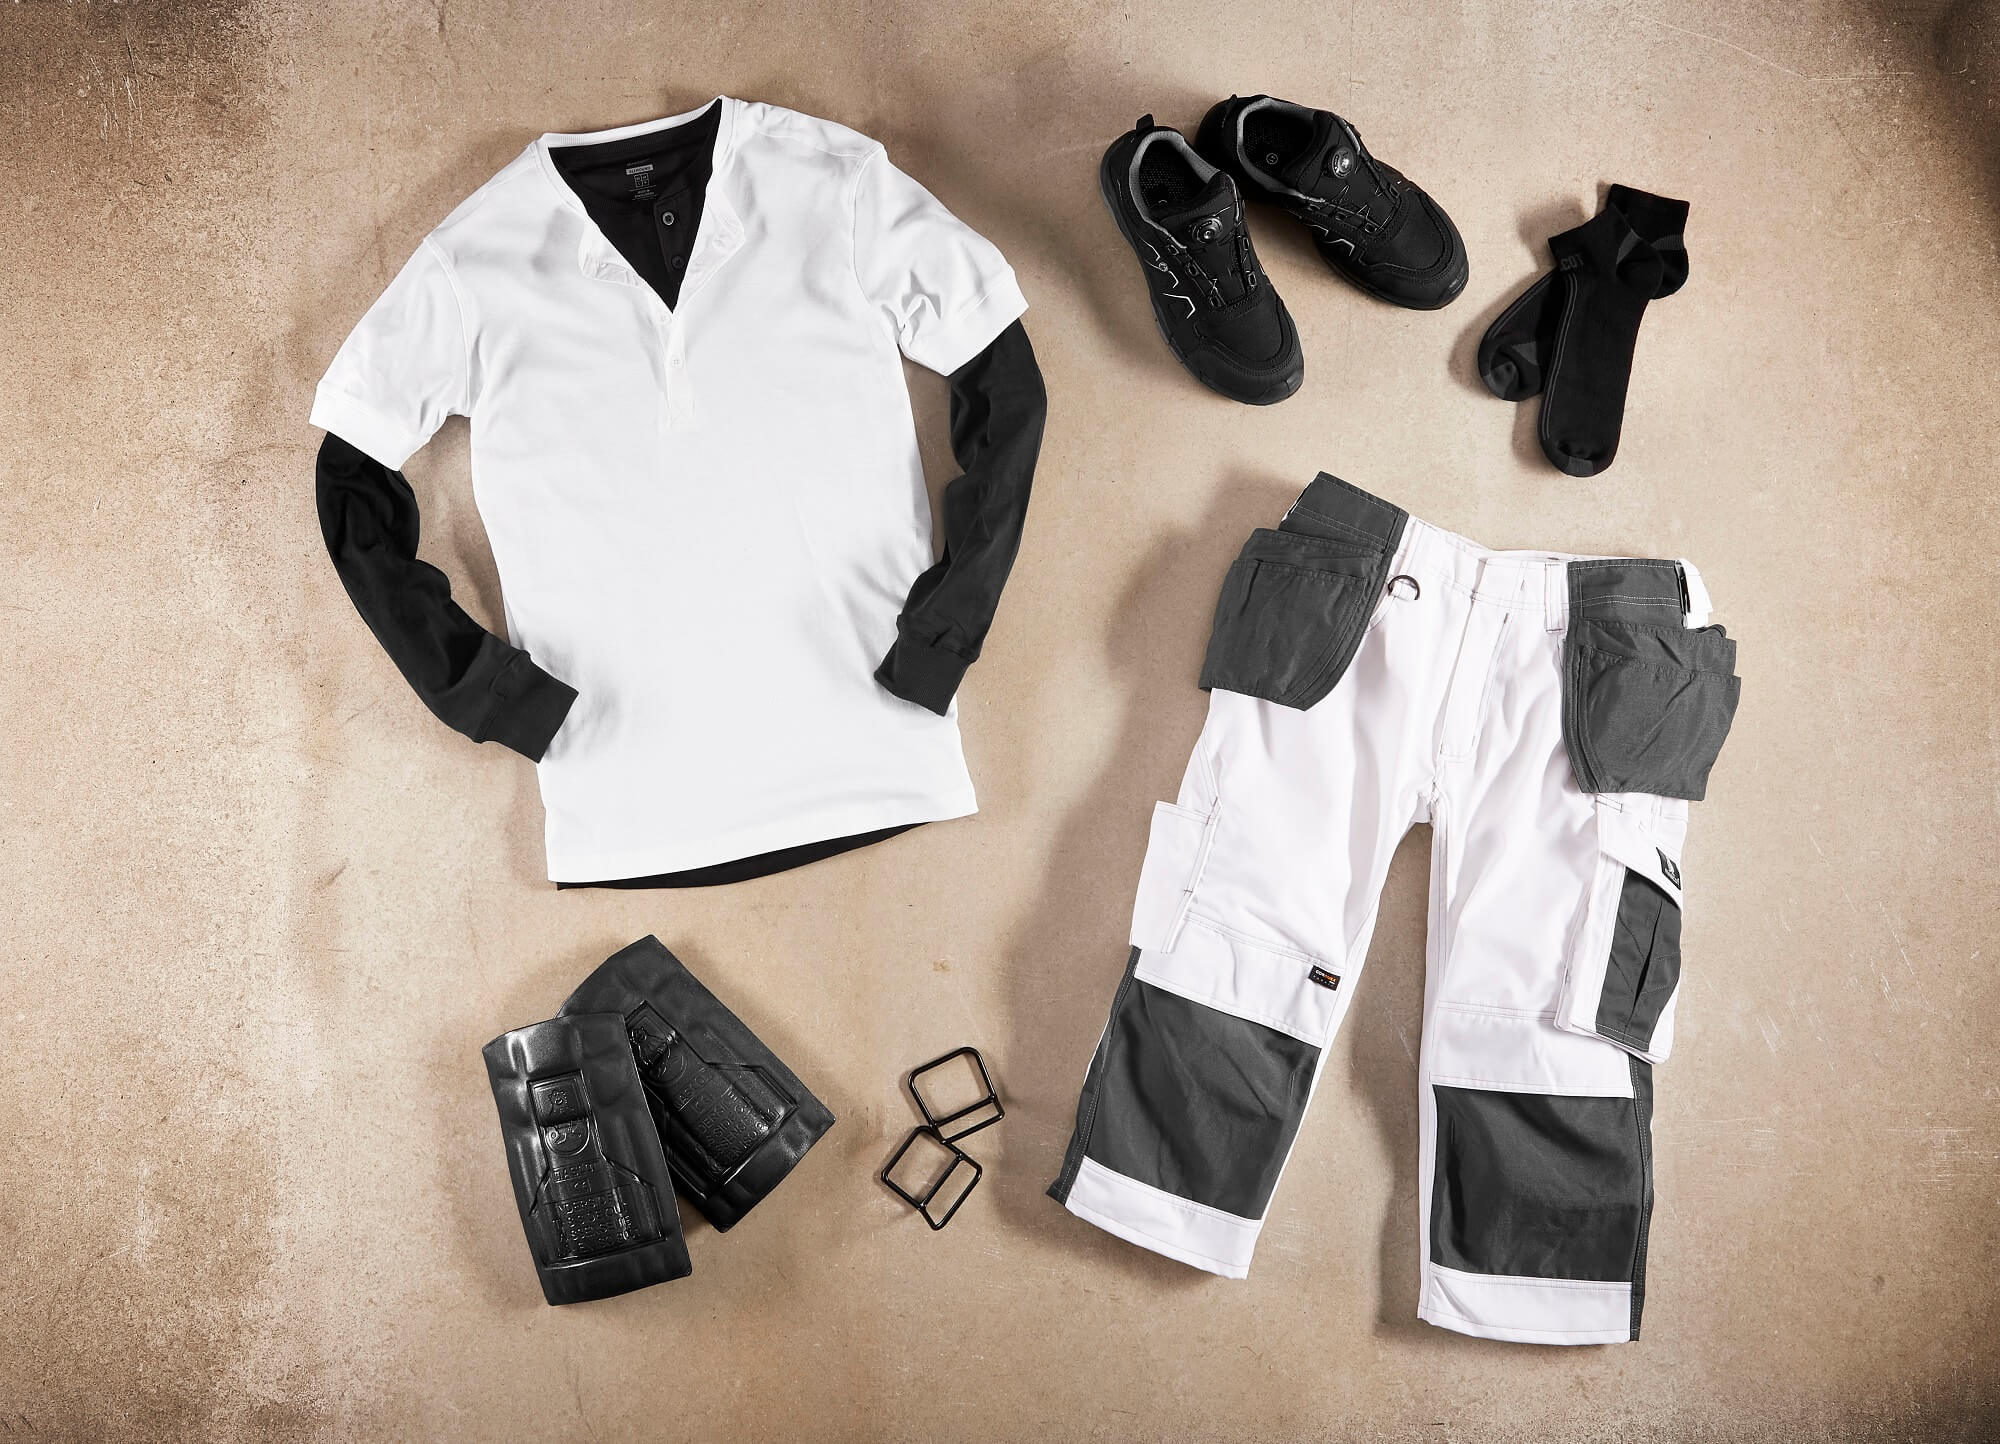 White - T-shirt, ¾ Work Pants & Accessories - Collage